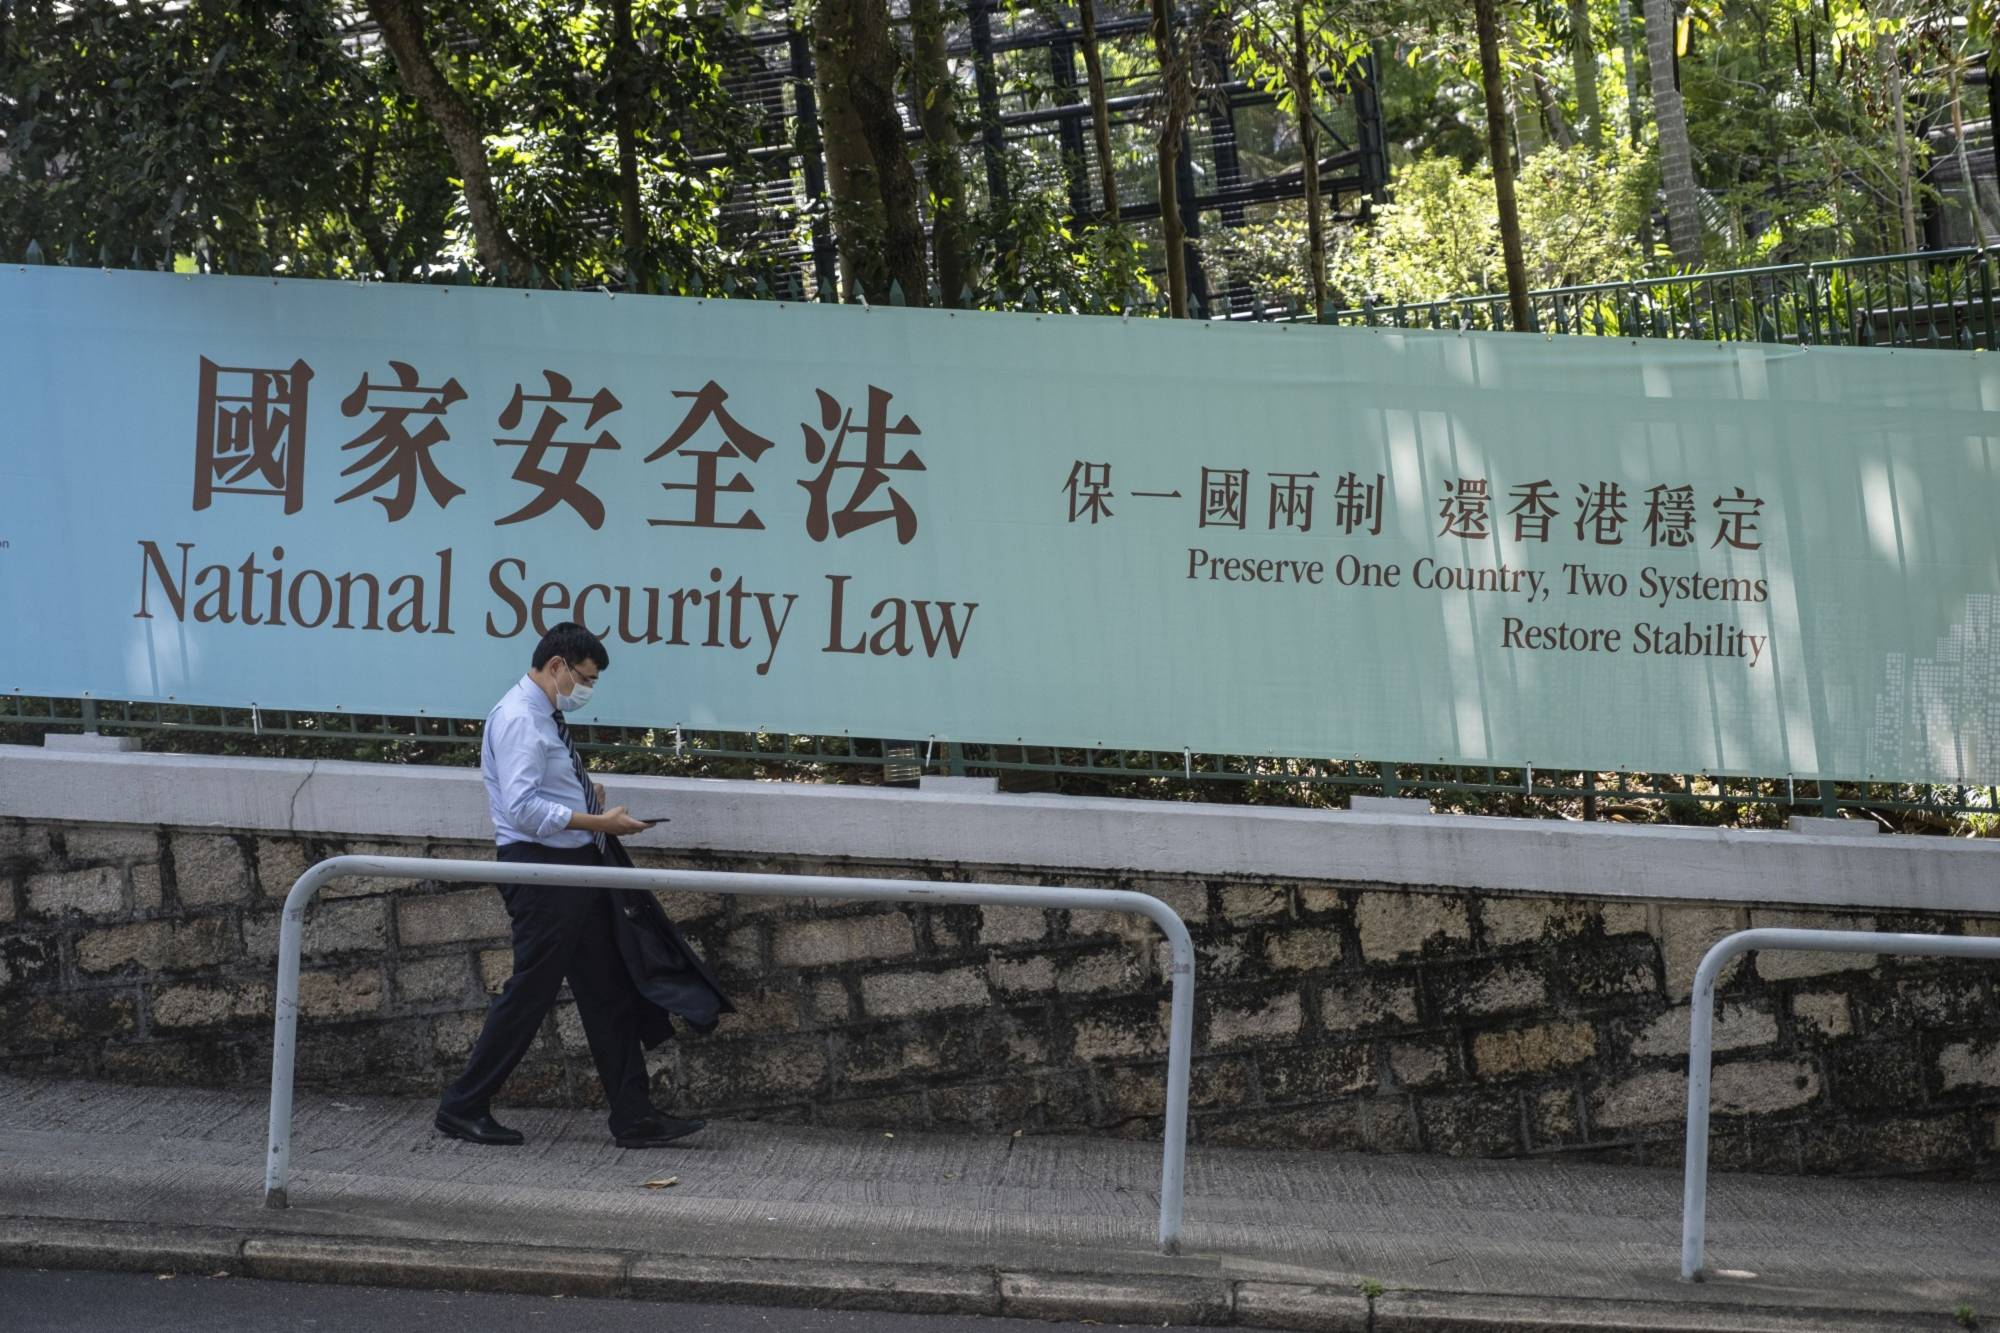 A government-sponsored advertisement promotes a new national security law in Hong Kong. | BLOOMBERG